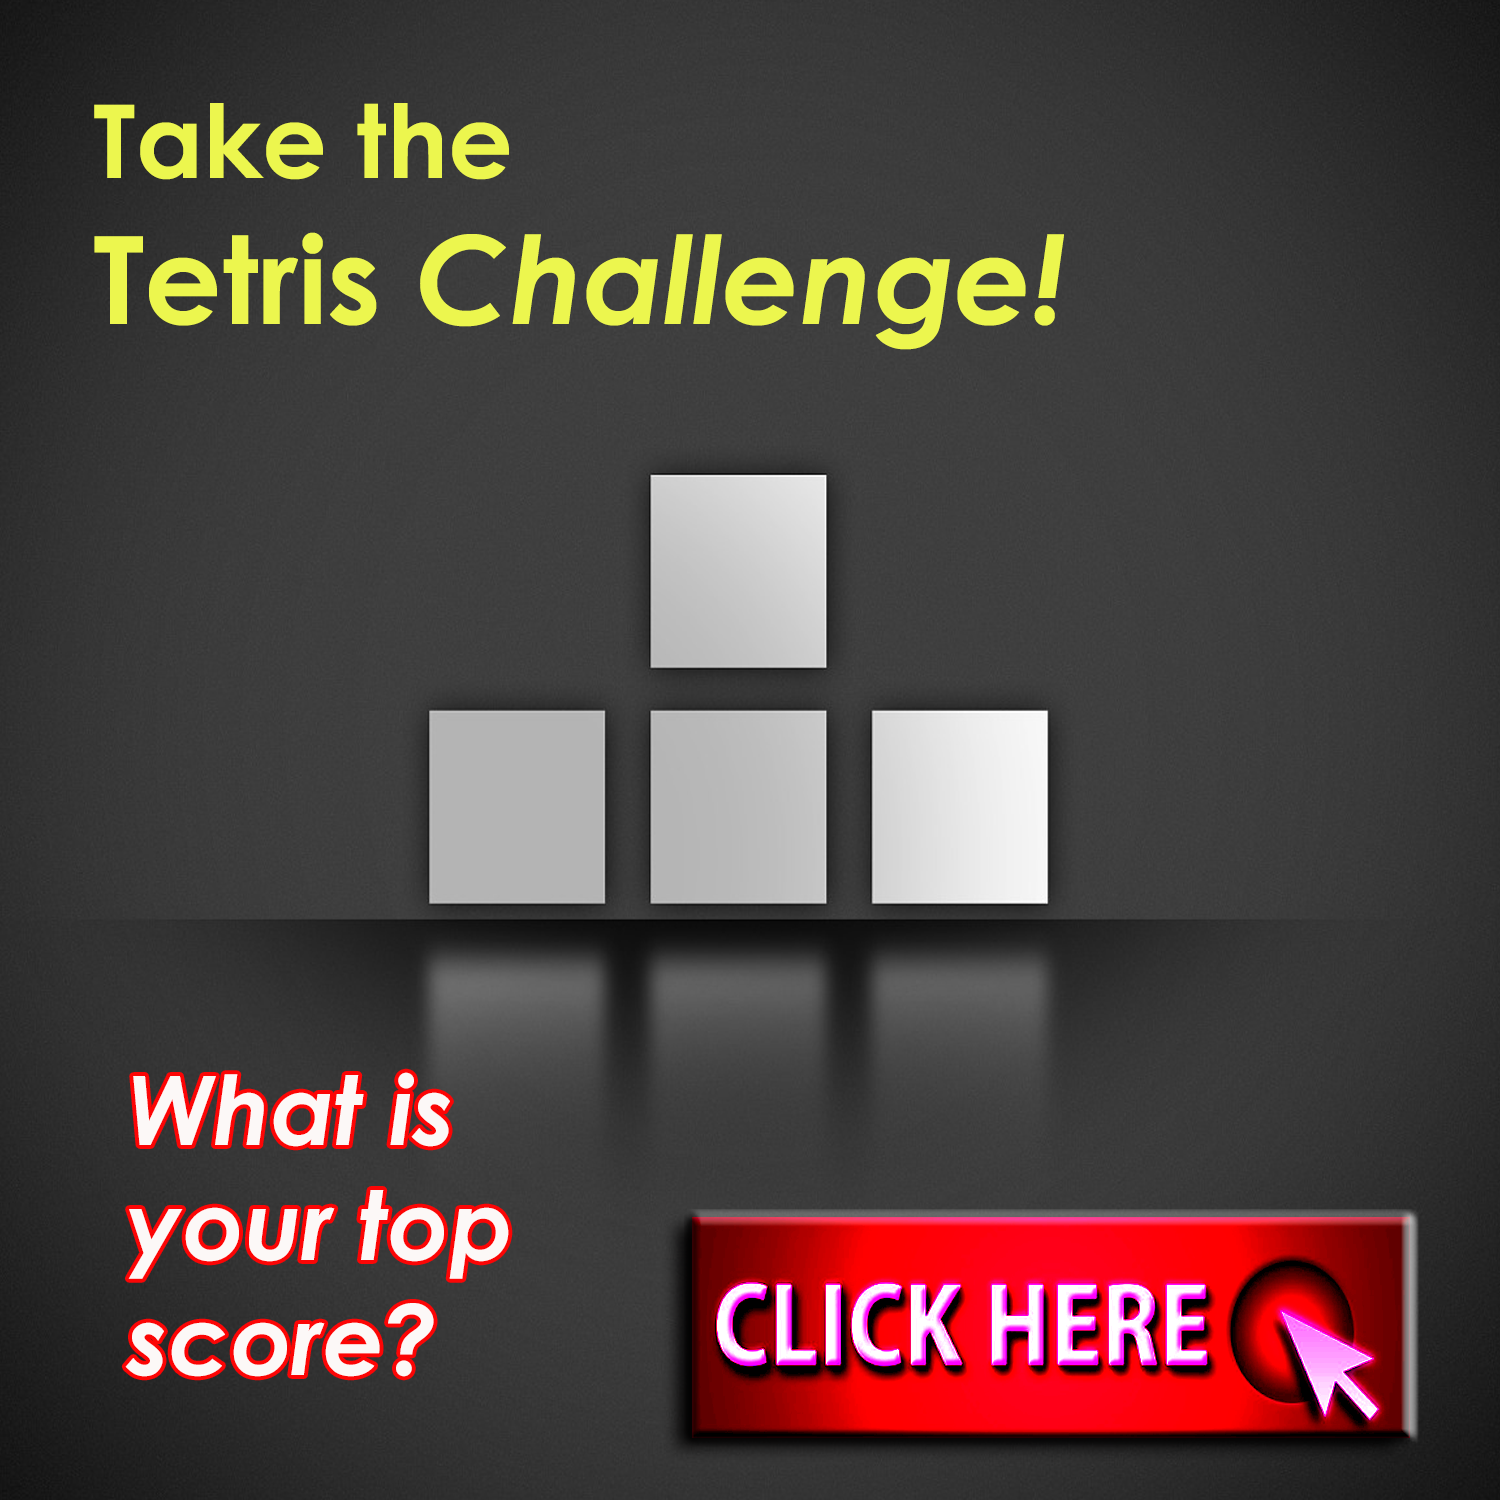 Take the Tetris Challenge! What is your top score?